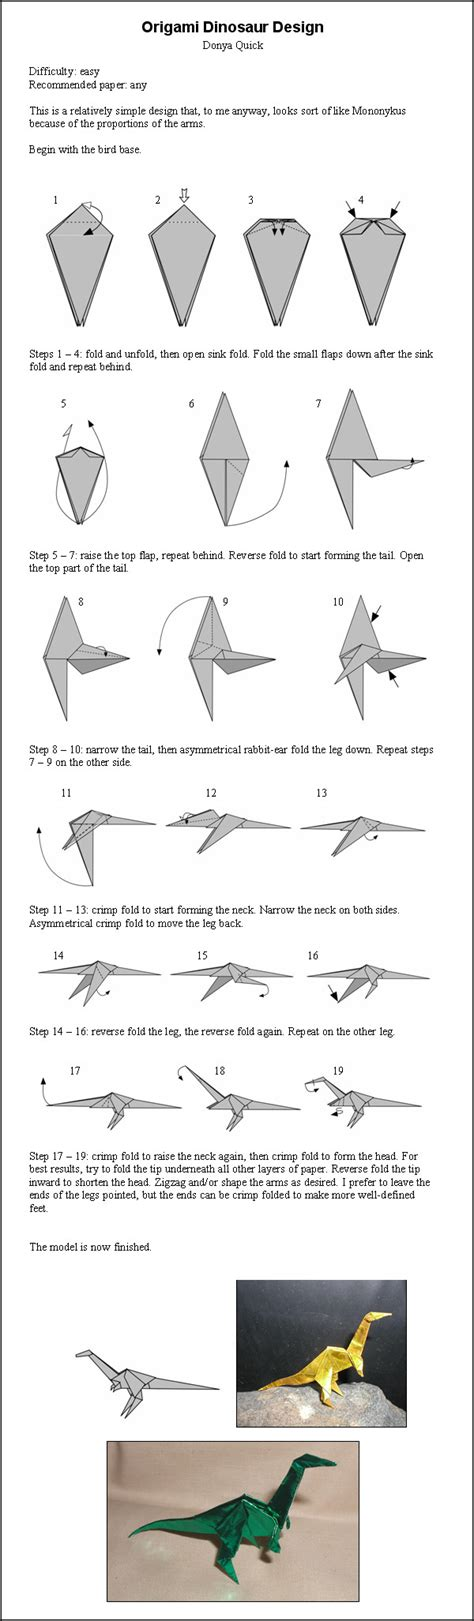 How To Make Paper Dinosaur Step By Step - origami dinosaur by donyaquick on deviantart